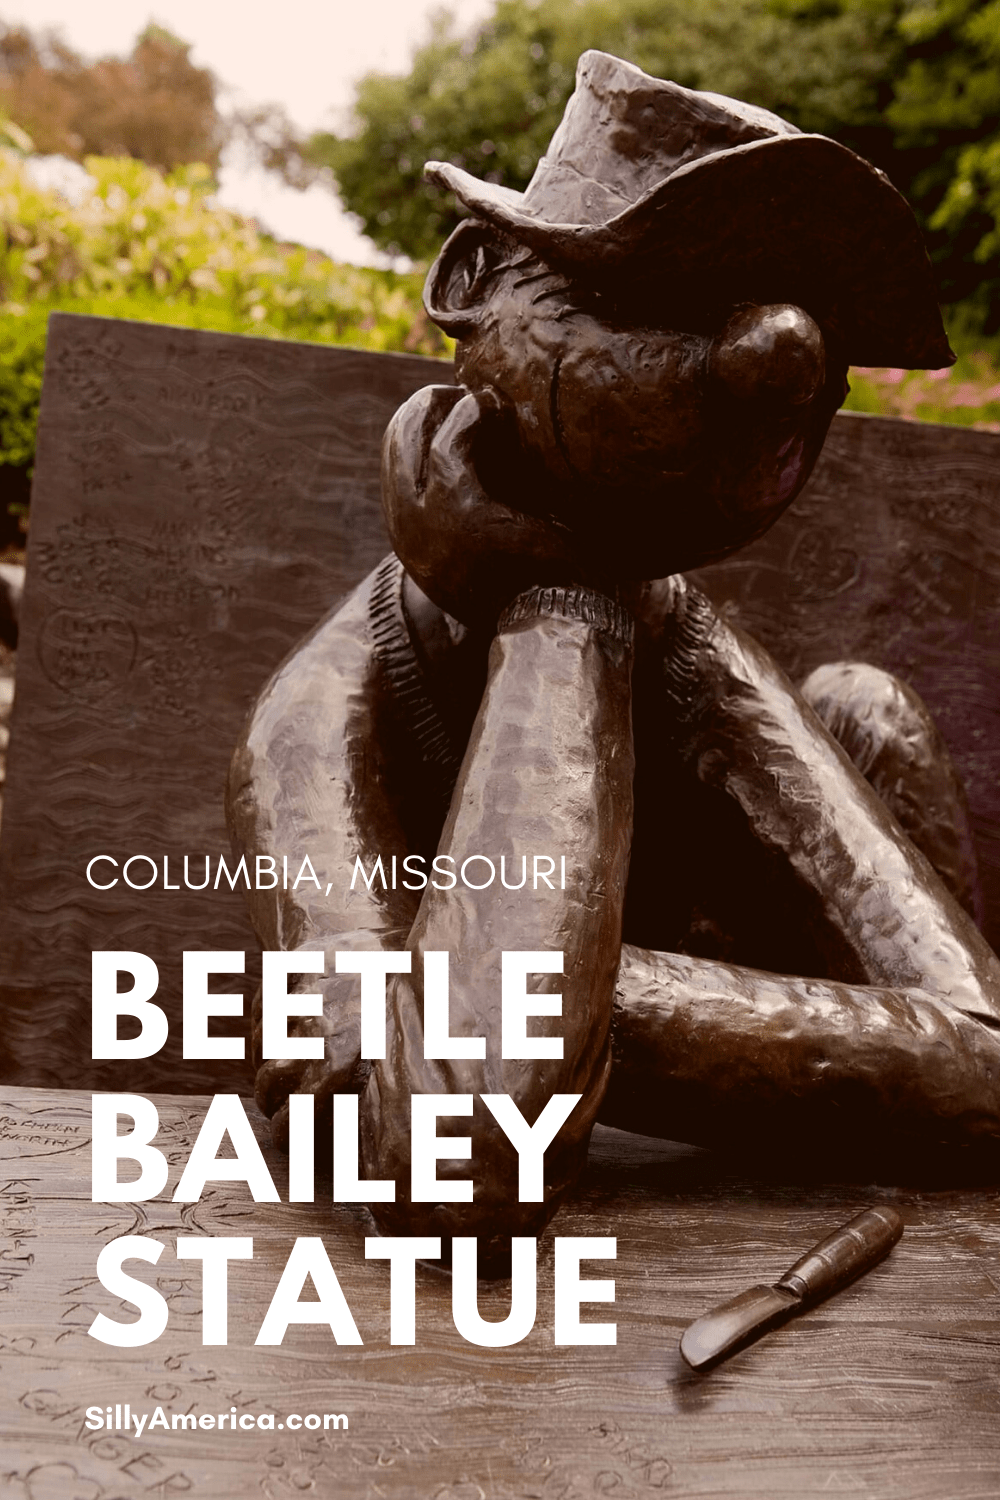 Celebrate comic strip artist and writer Mort Walker by visiting the Beetle Bailey Statue in Columbia, Missouri - a roadside attraction at the University of Missouri. #MissouriRoadsideAttractions #MissouriRoadsideAttraction #RoadsideAttractions #RoadsideAttraction #RoadTrip #MissouriRoadTrip #MissouriRoadTripMap #PlacestoVisitinMissouri #MissouriRoadTripIdeas #MissouriTravelRoadTrip #RoadsideAttraction #RoadsideAttractions